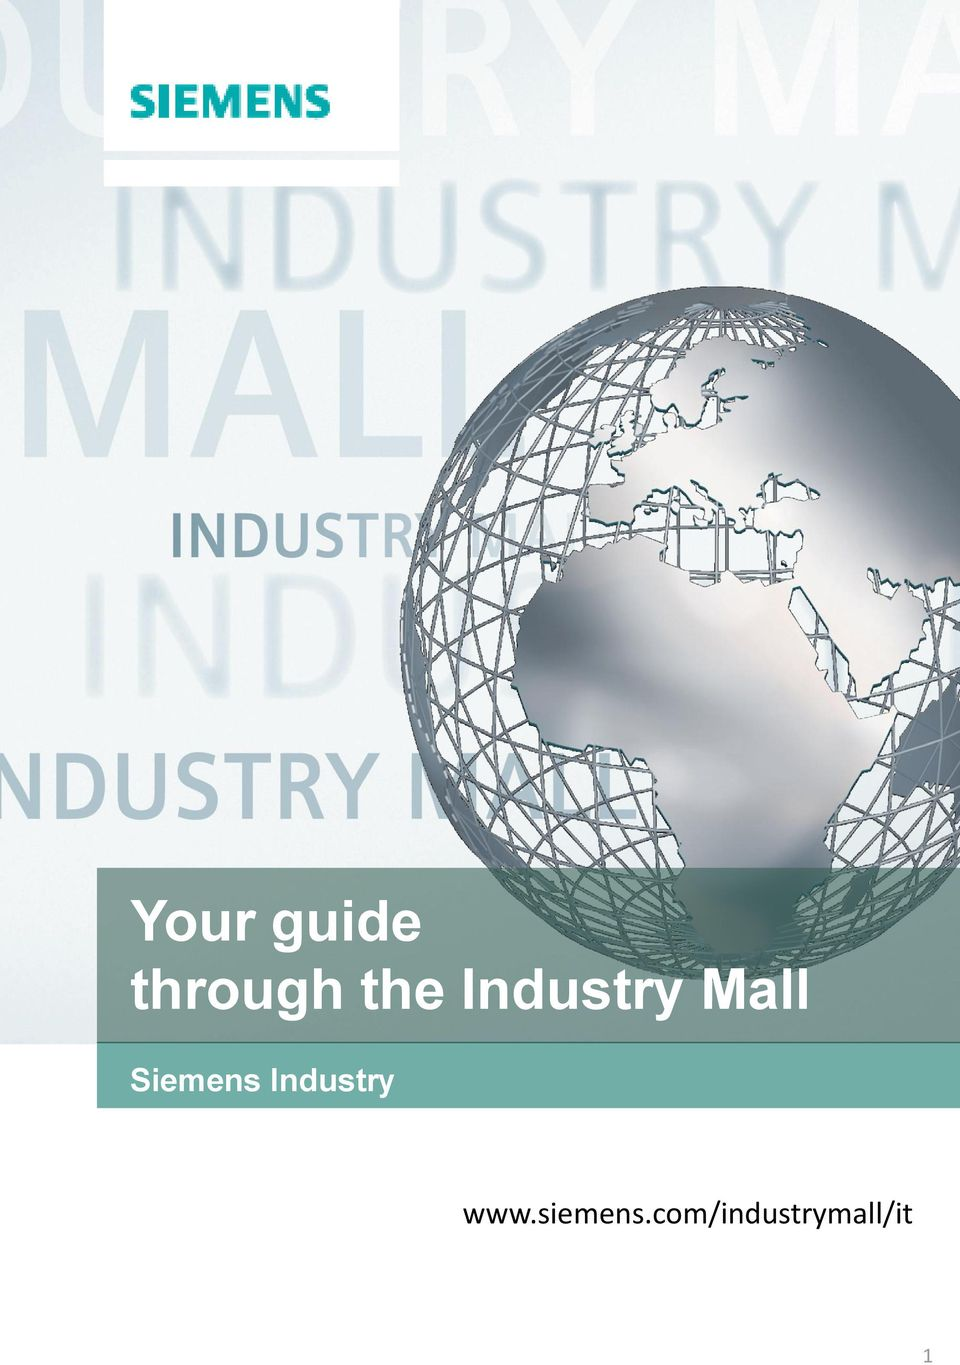 ymall/it through the Industry